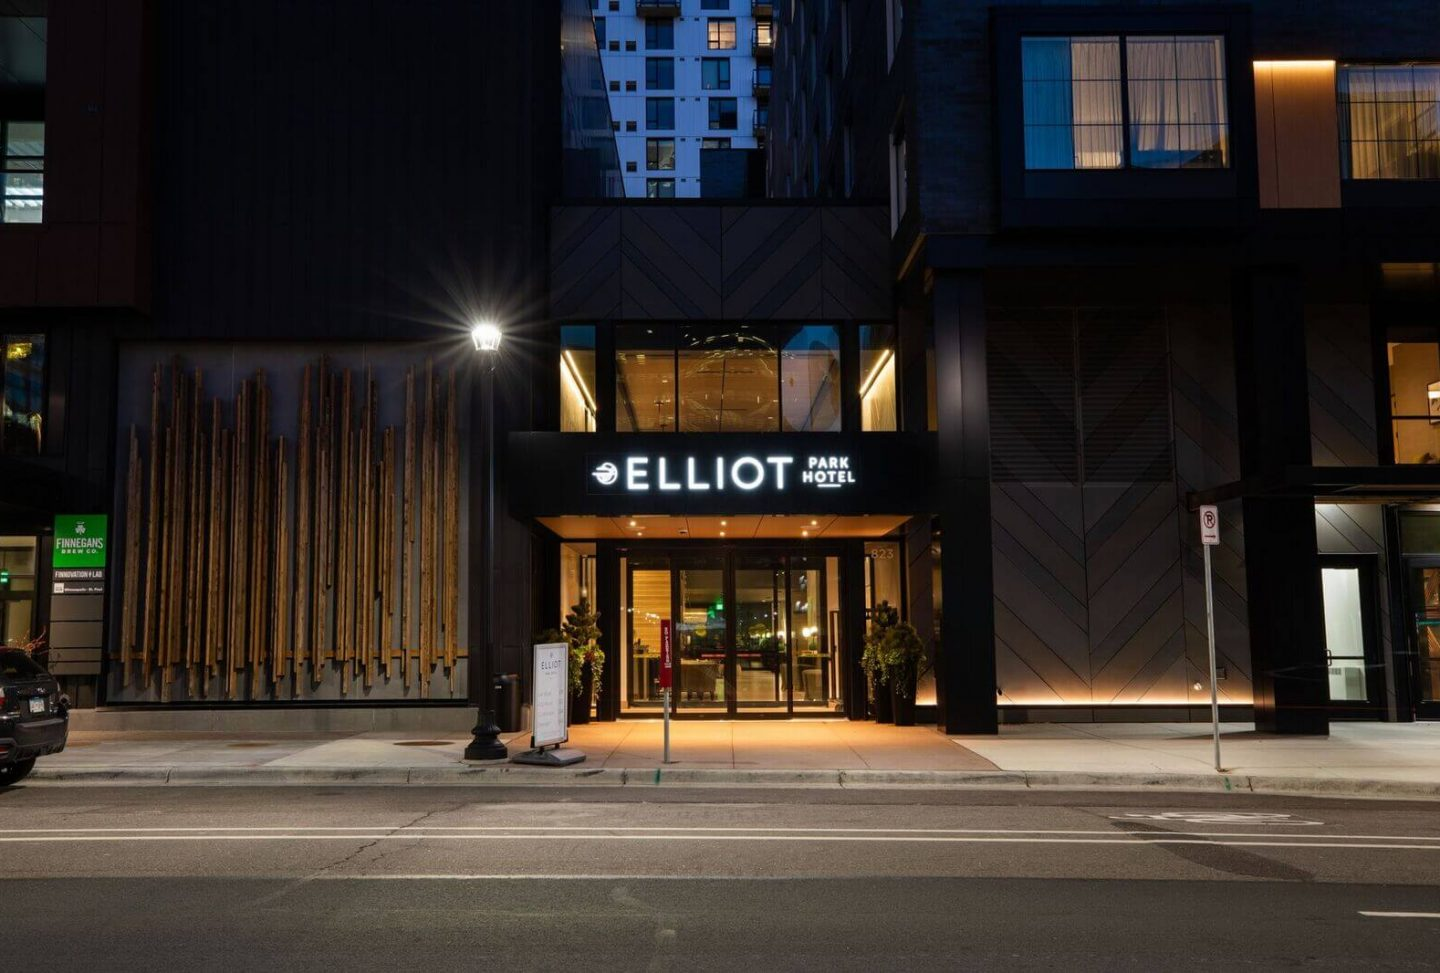 View of entrance to Elliot Park Hotel at night